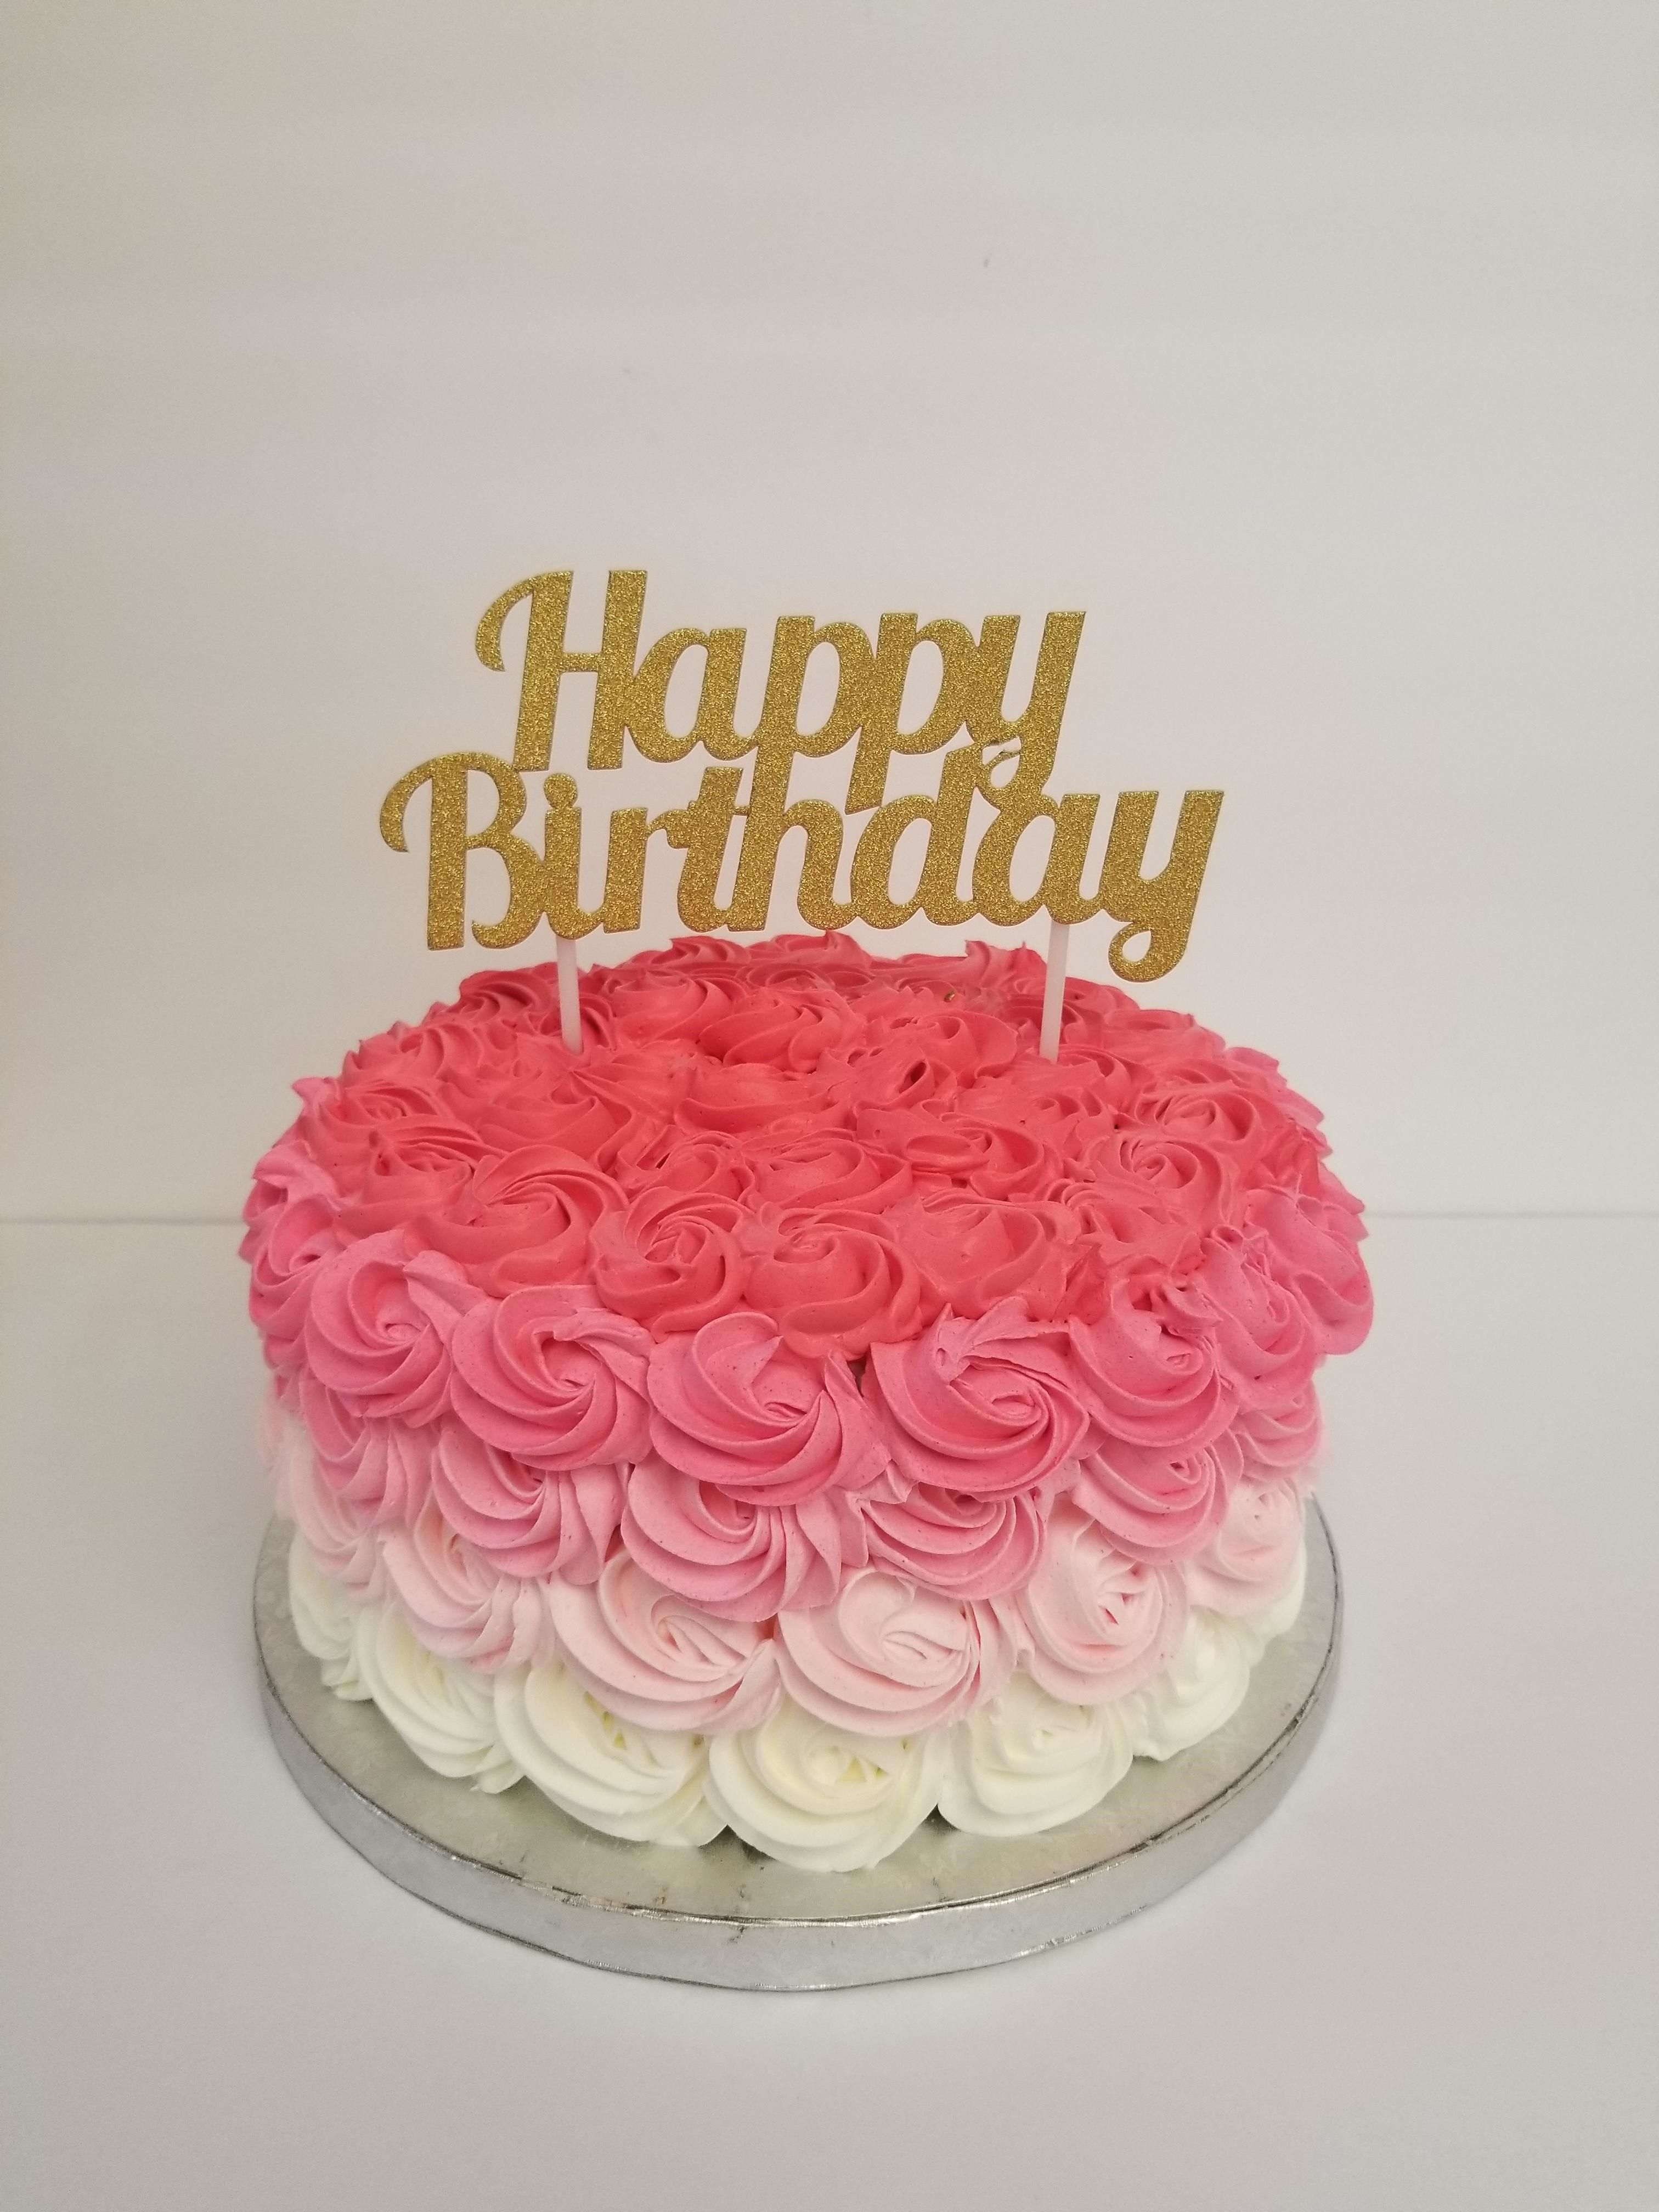 Cake Decorating How About Birthday Cakes For Adults 13 Birthday